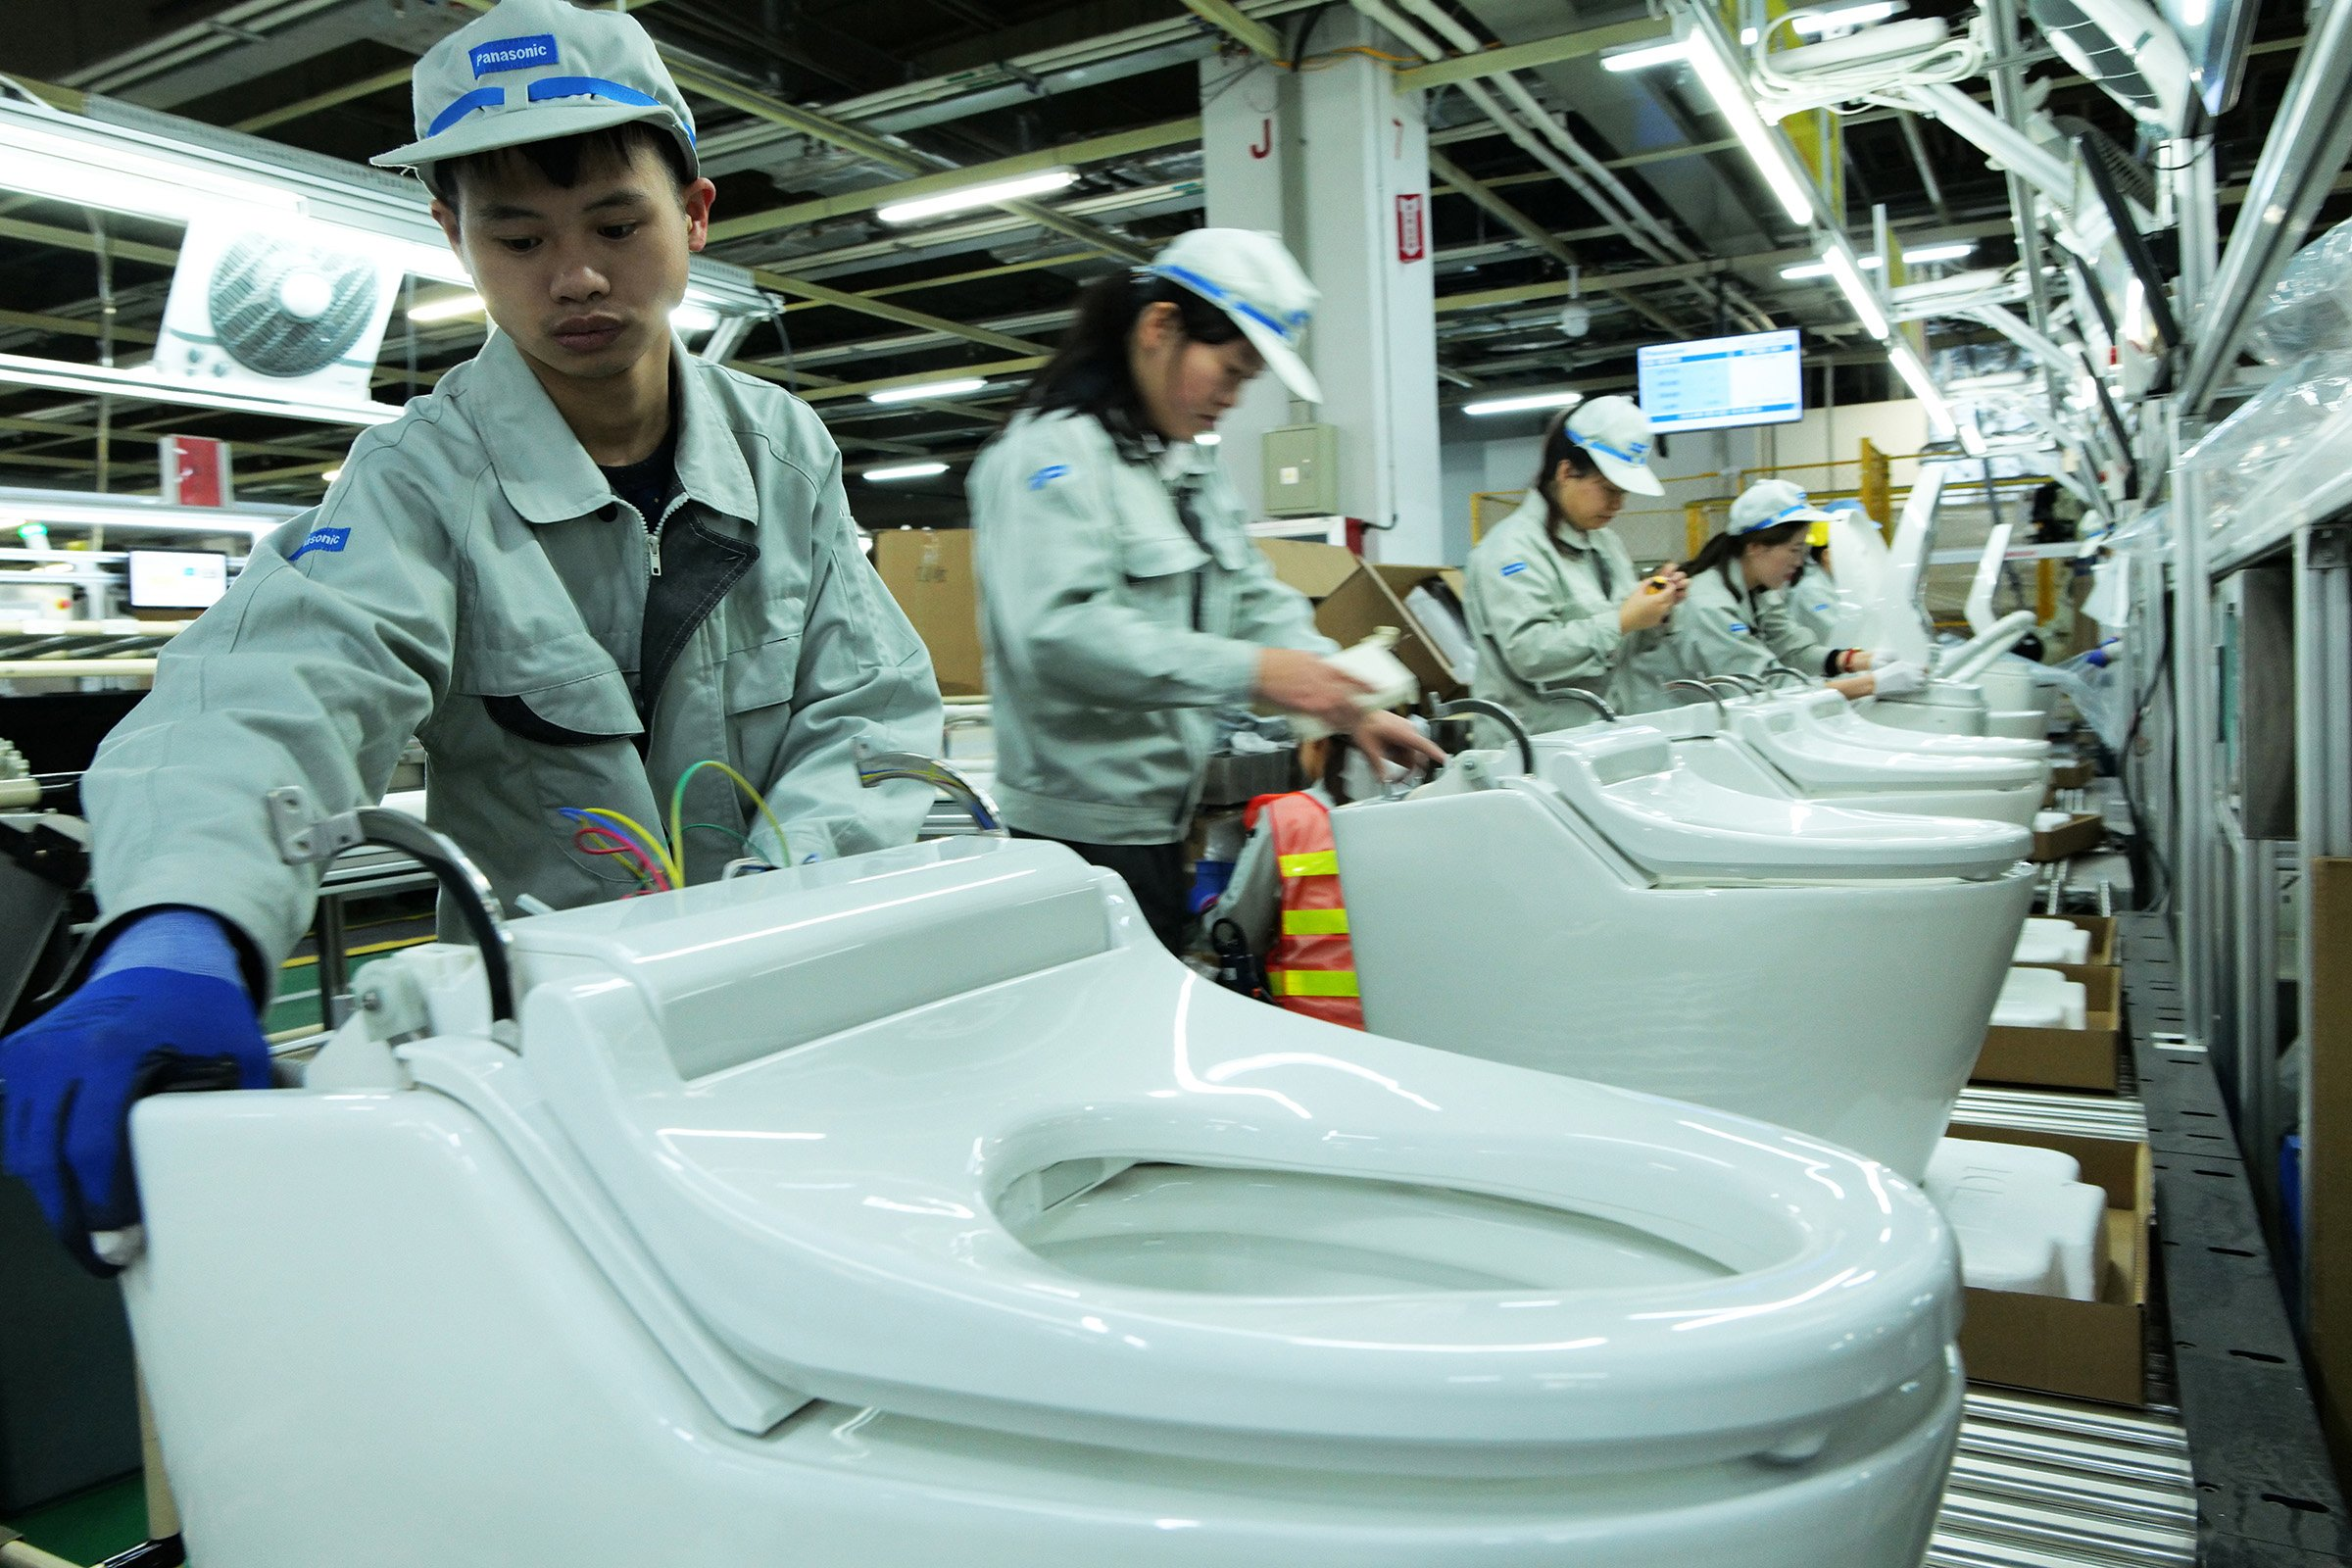 Photo: Assembly line for the toilet in the Panasonic Hangzhou plant.